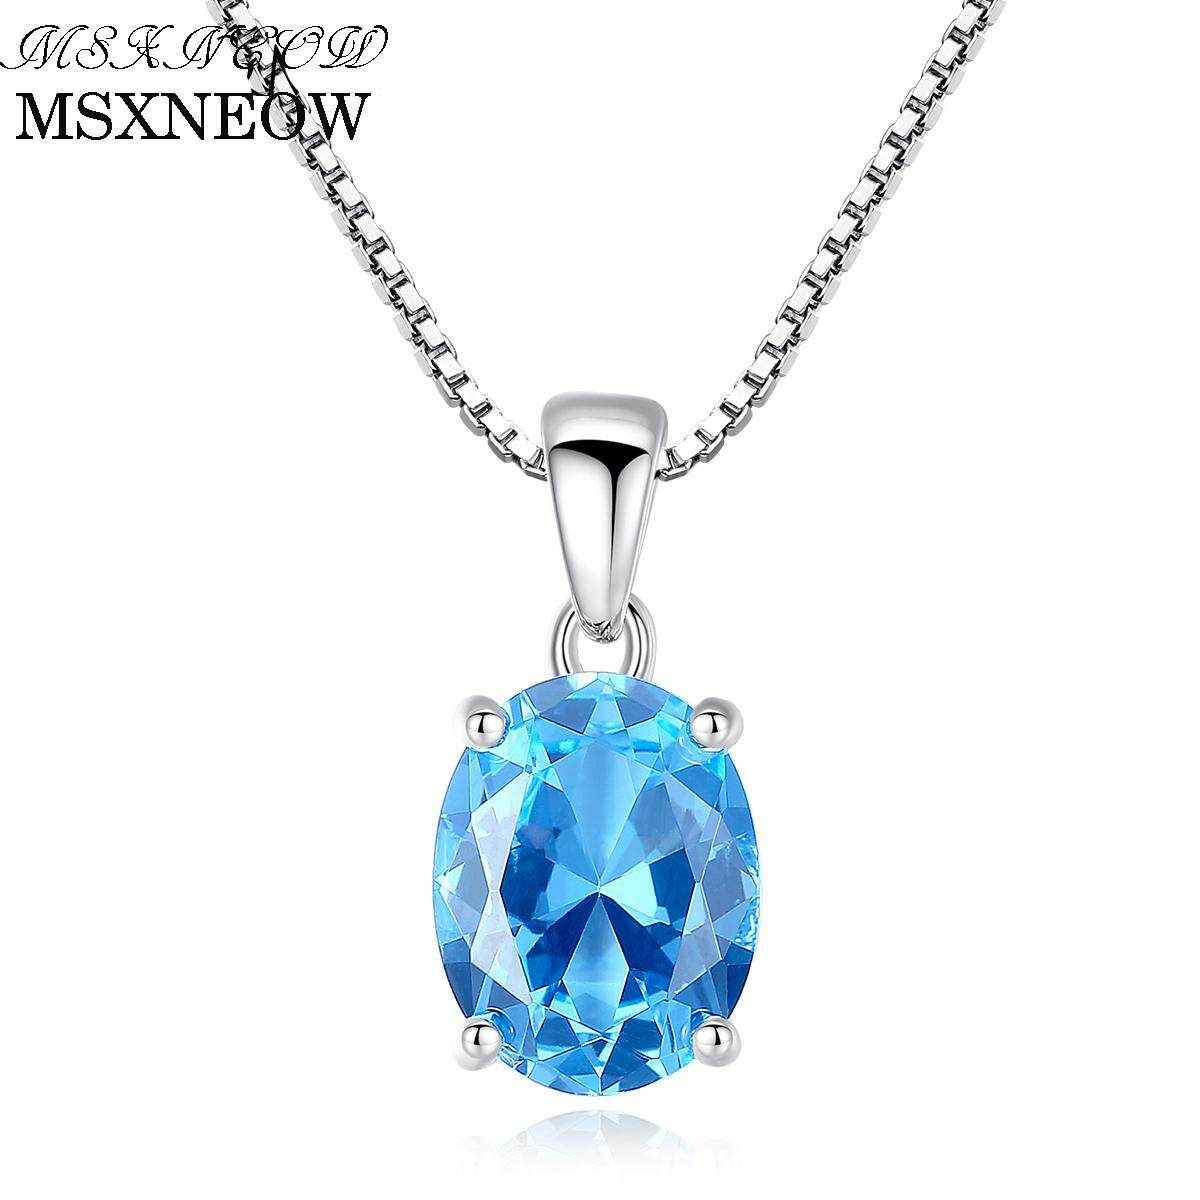 MSXNEOW 2.3 Carat Oval Shape Solitaire Natural Sky Blue Topaz Stone Pendant 925 Sterling Silver Charms Chain Necklace for Women